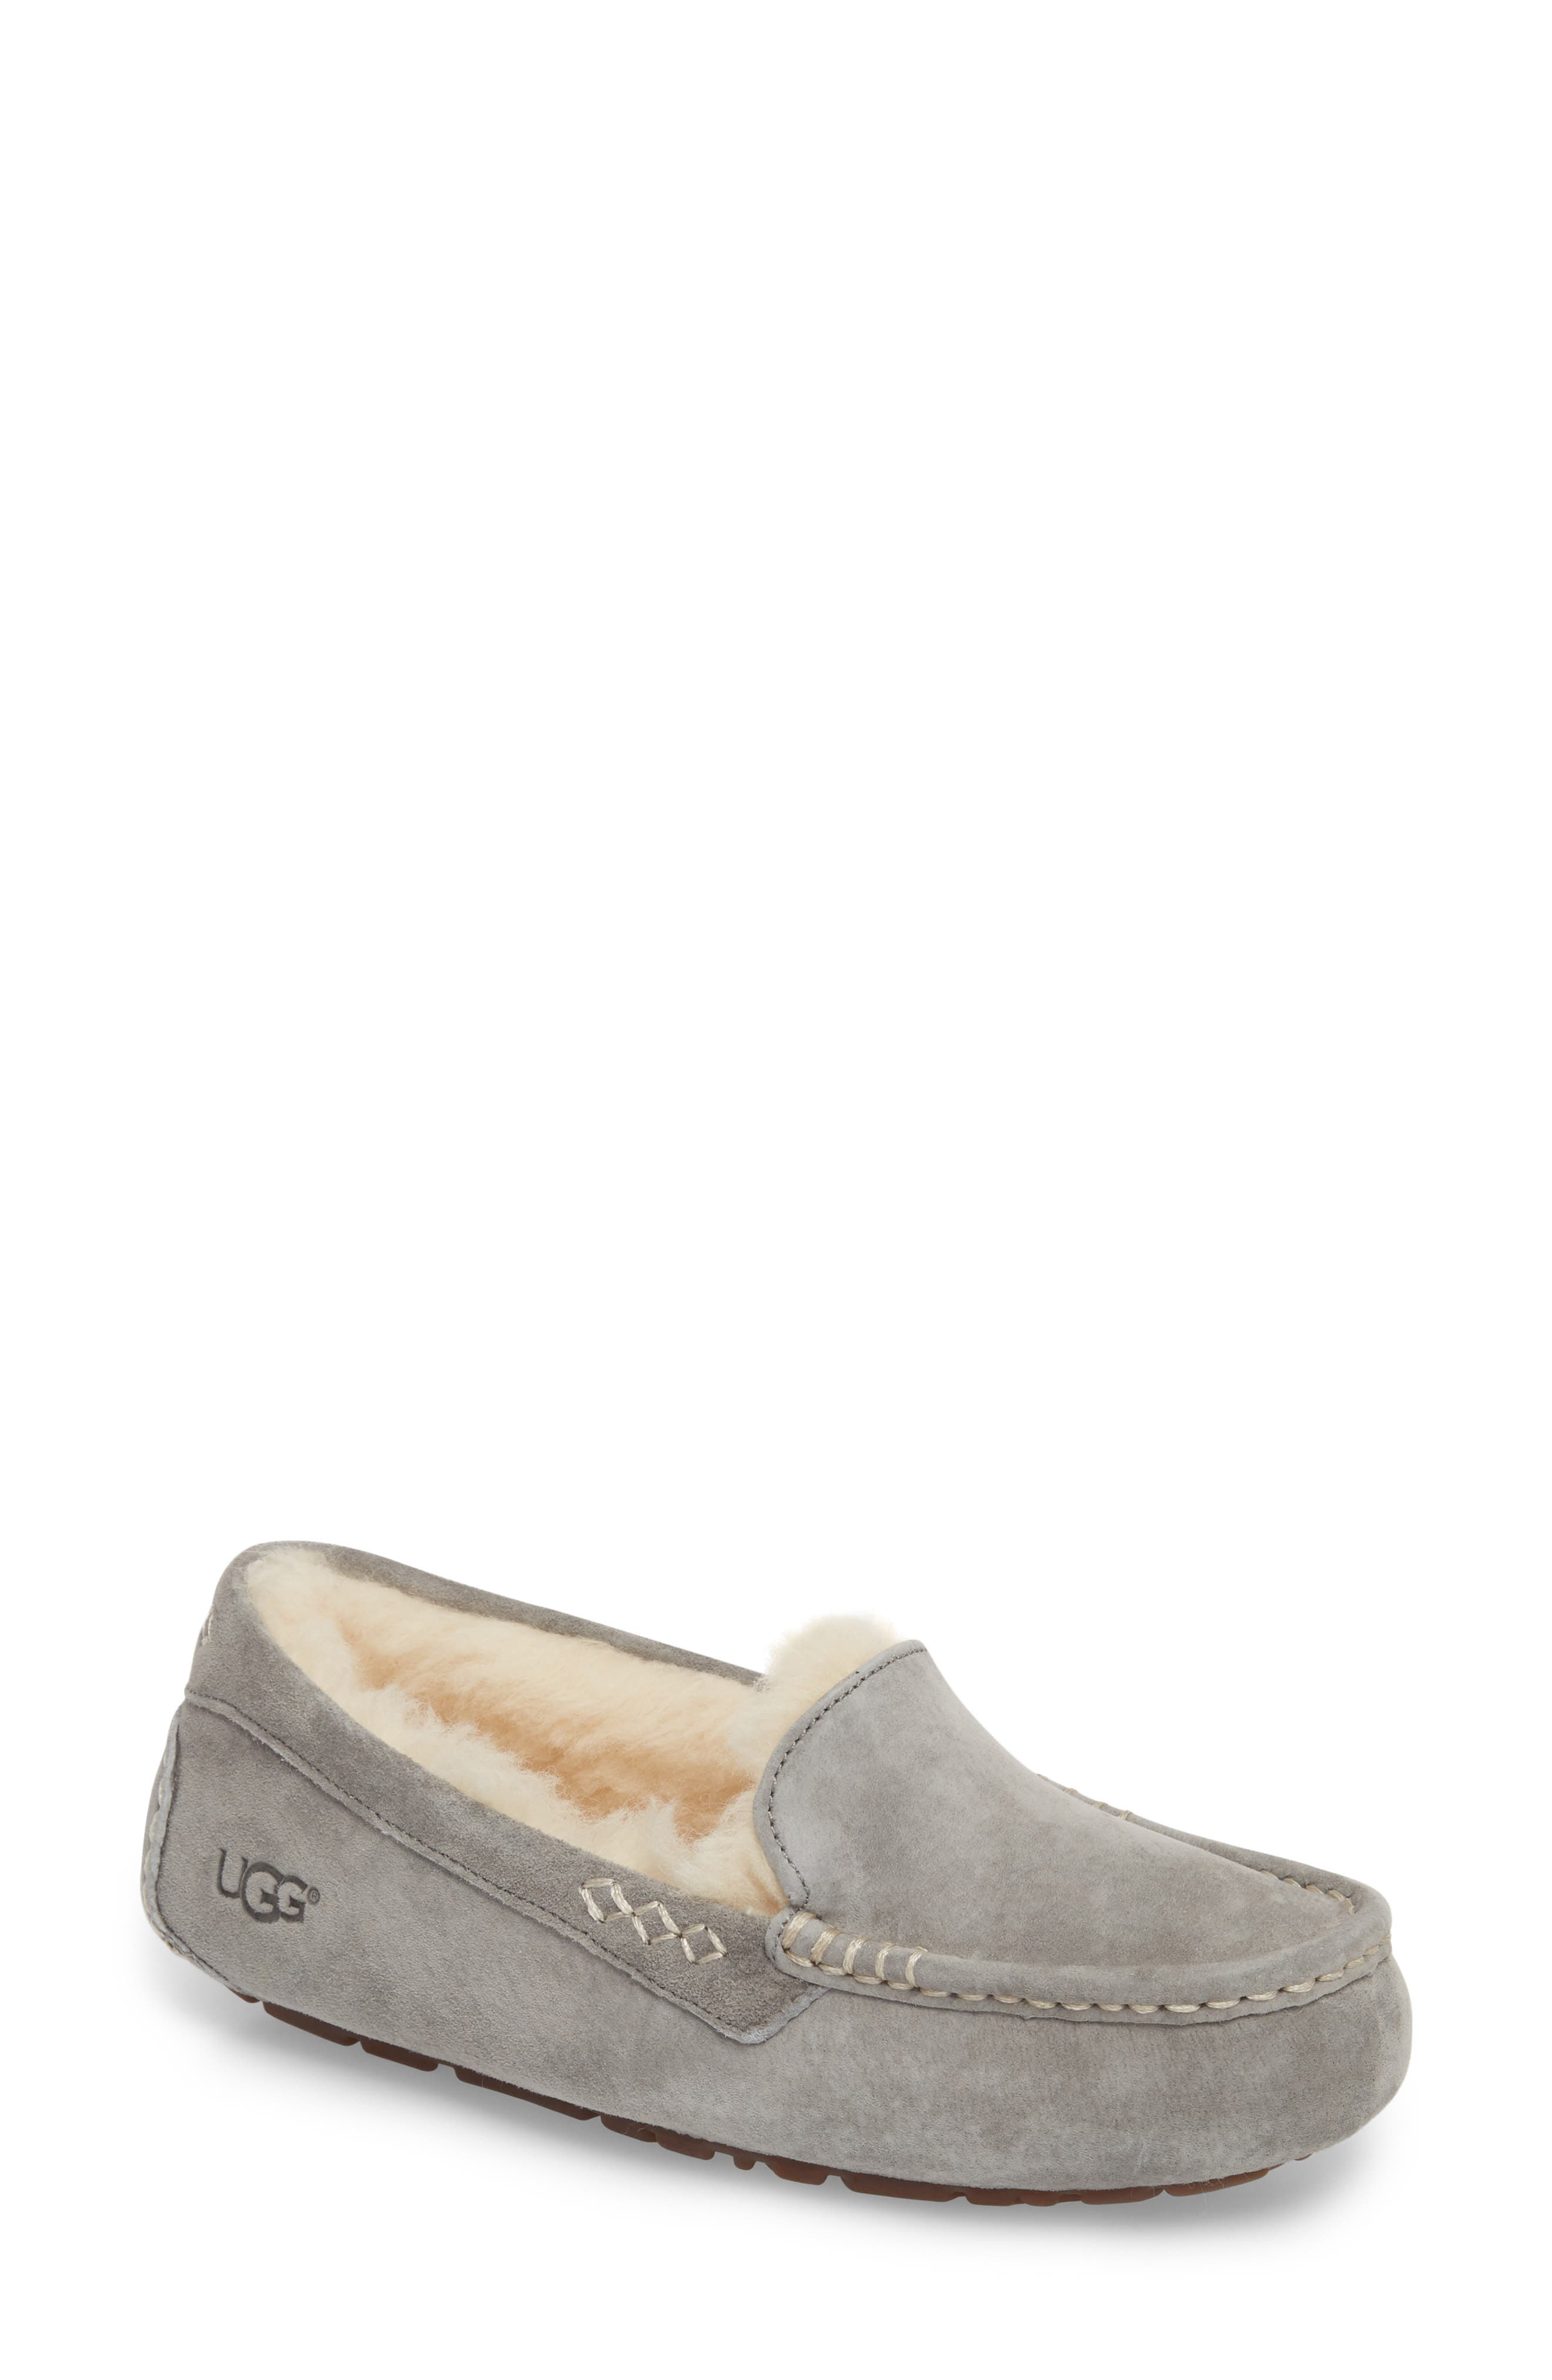 Ansley Water Resistant Slipper, Main, color, LIGHT GREY